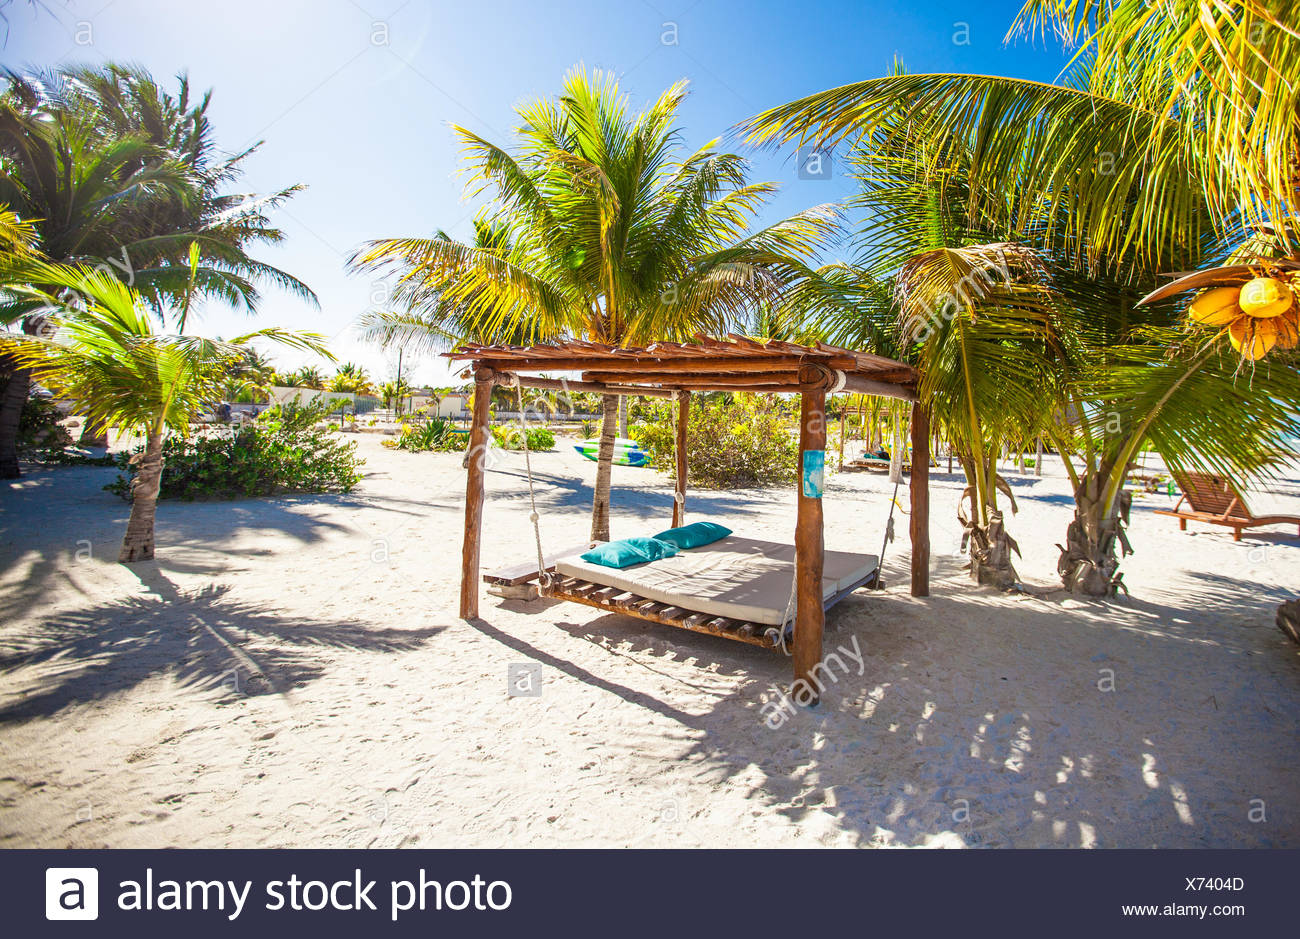 c2be6222f75e7 Beach beds and hammocks among palm trees at perfect tropical coast ...